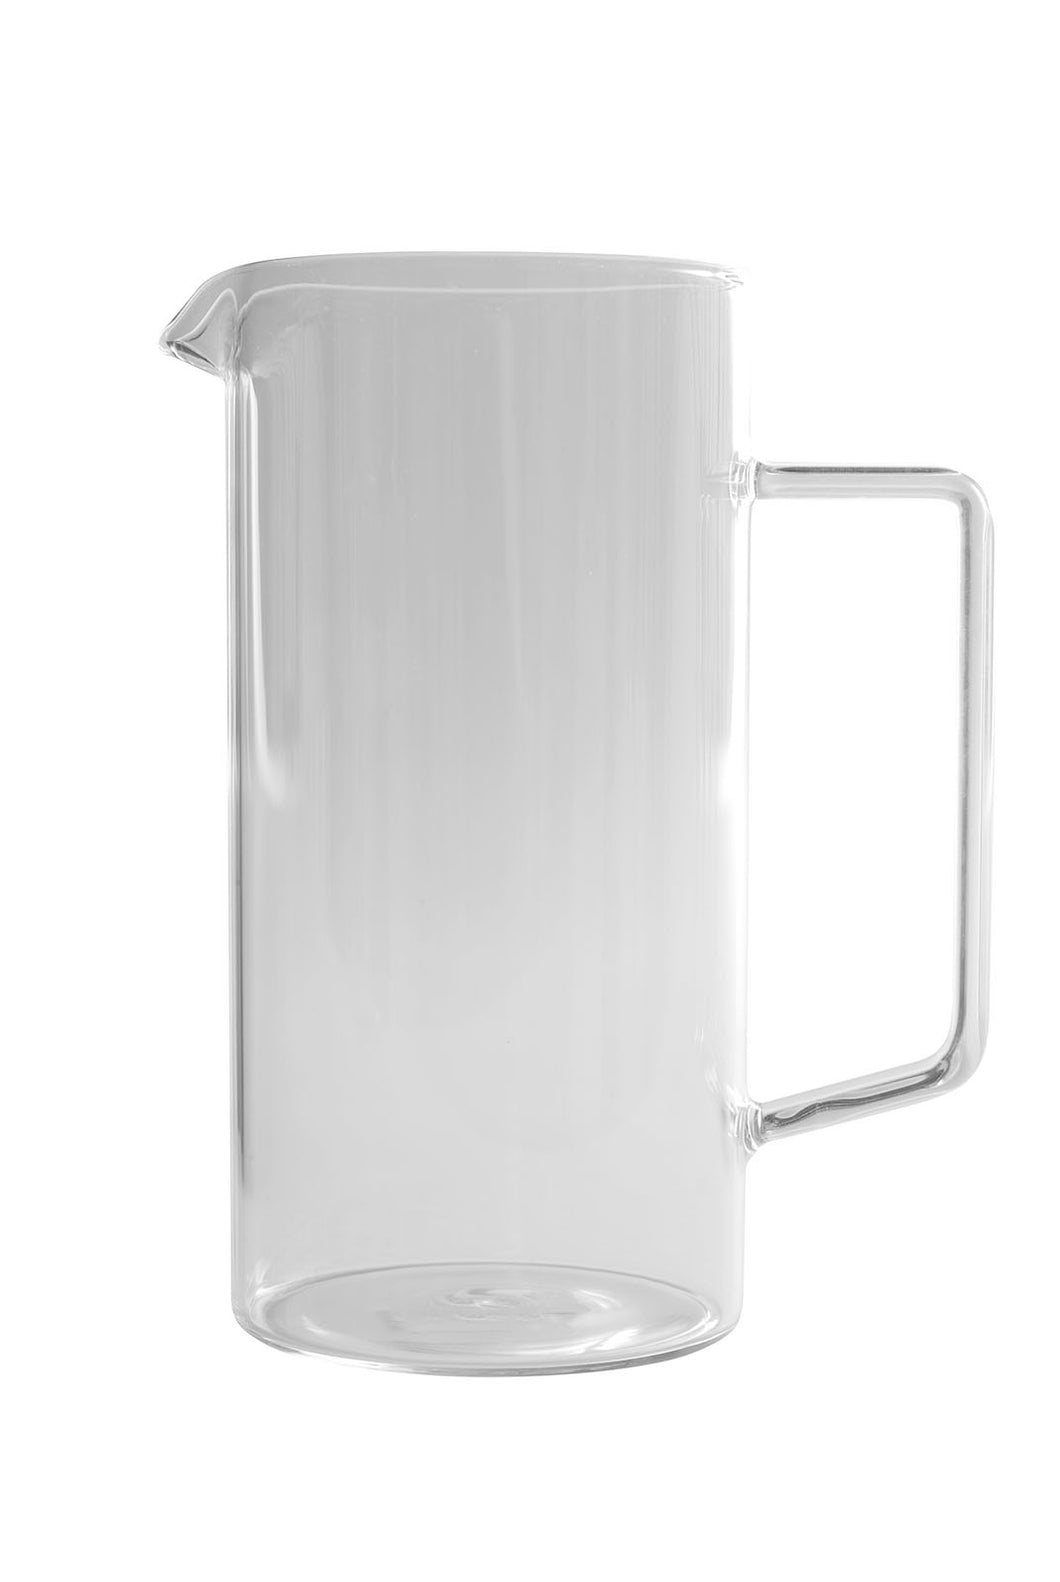 Serax - Glassware Collection - Glass Carafe - Large